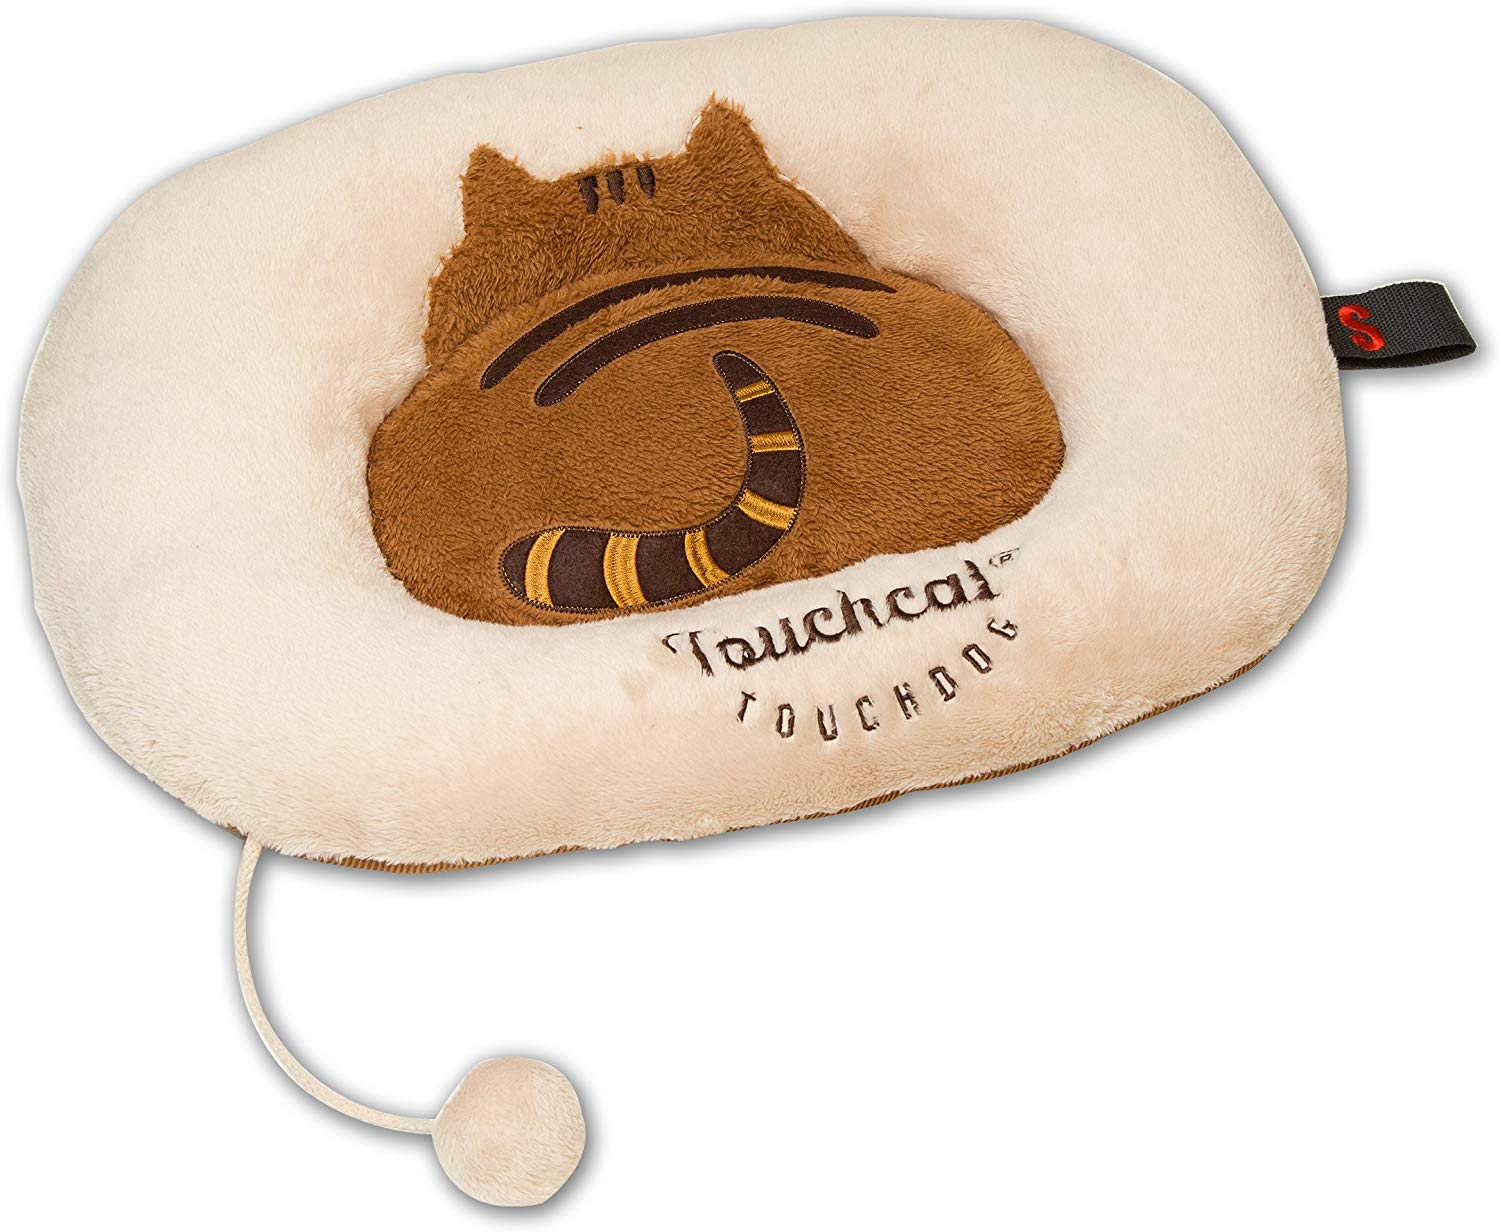 Touchcat Kitty-Tails Designer Fashion Cat Bed, Beige/Brown